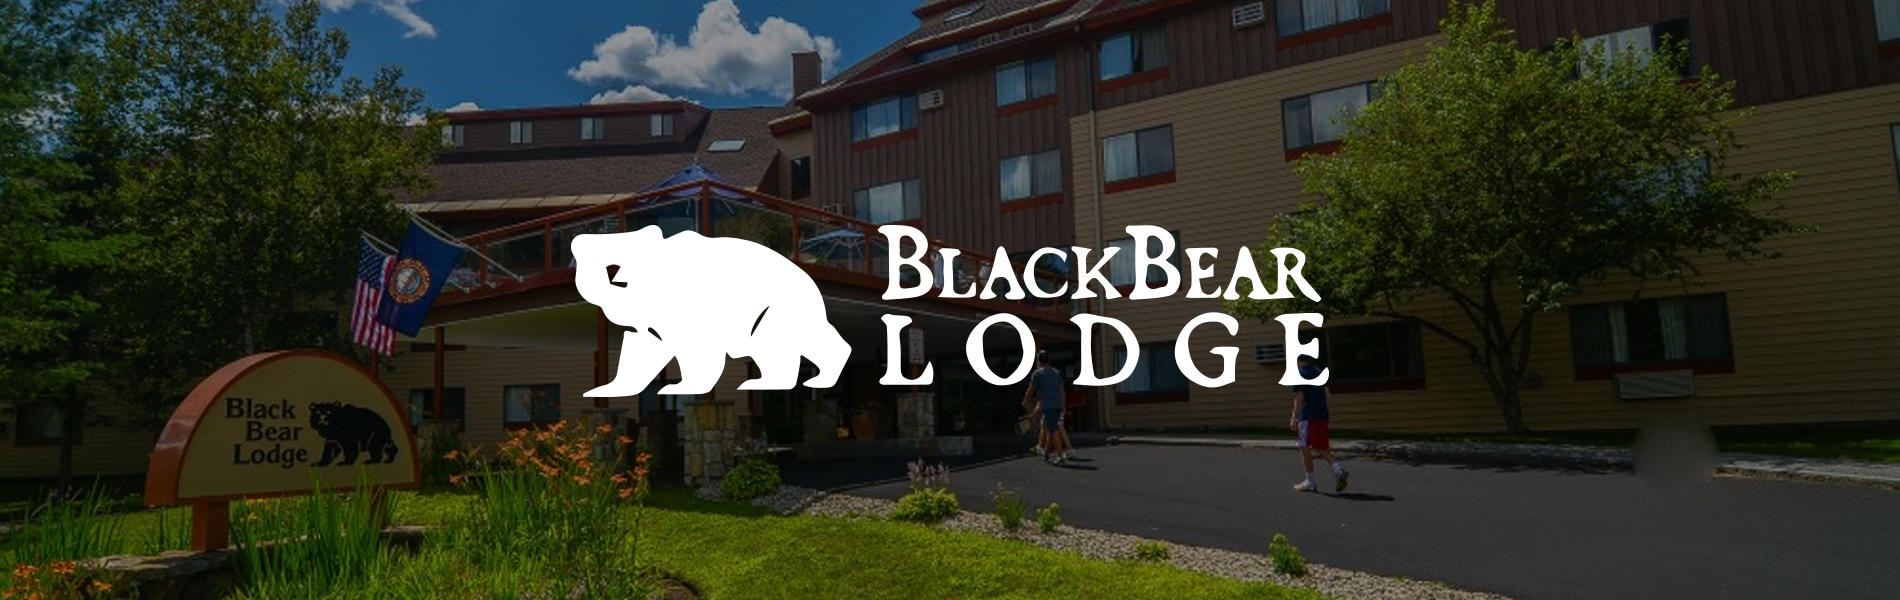 Choose a hotel style room or a condo at the Black Bear Lodge